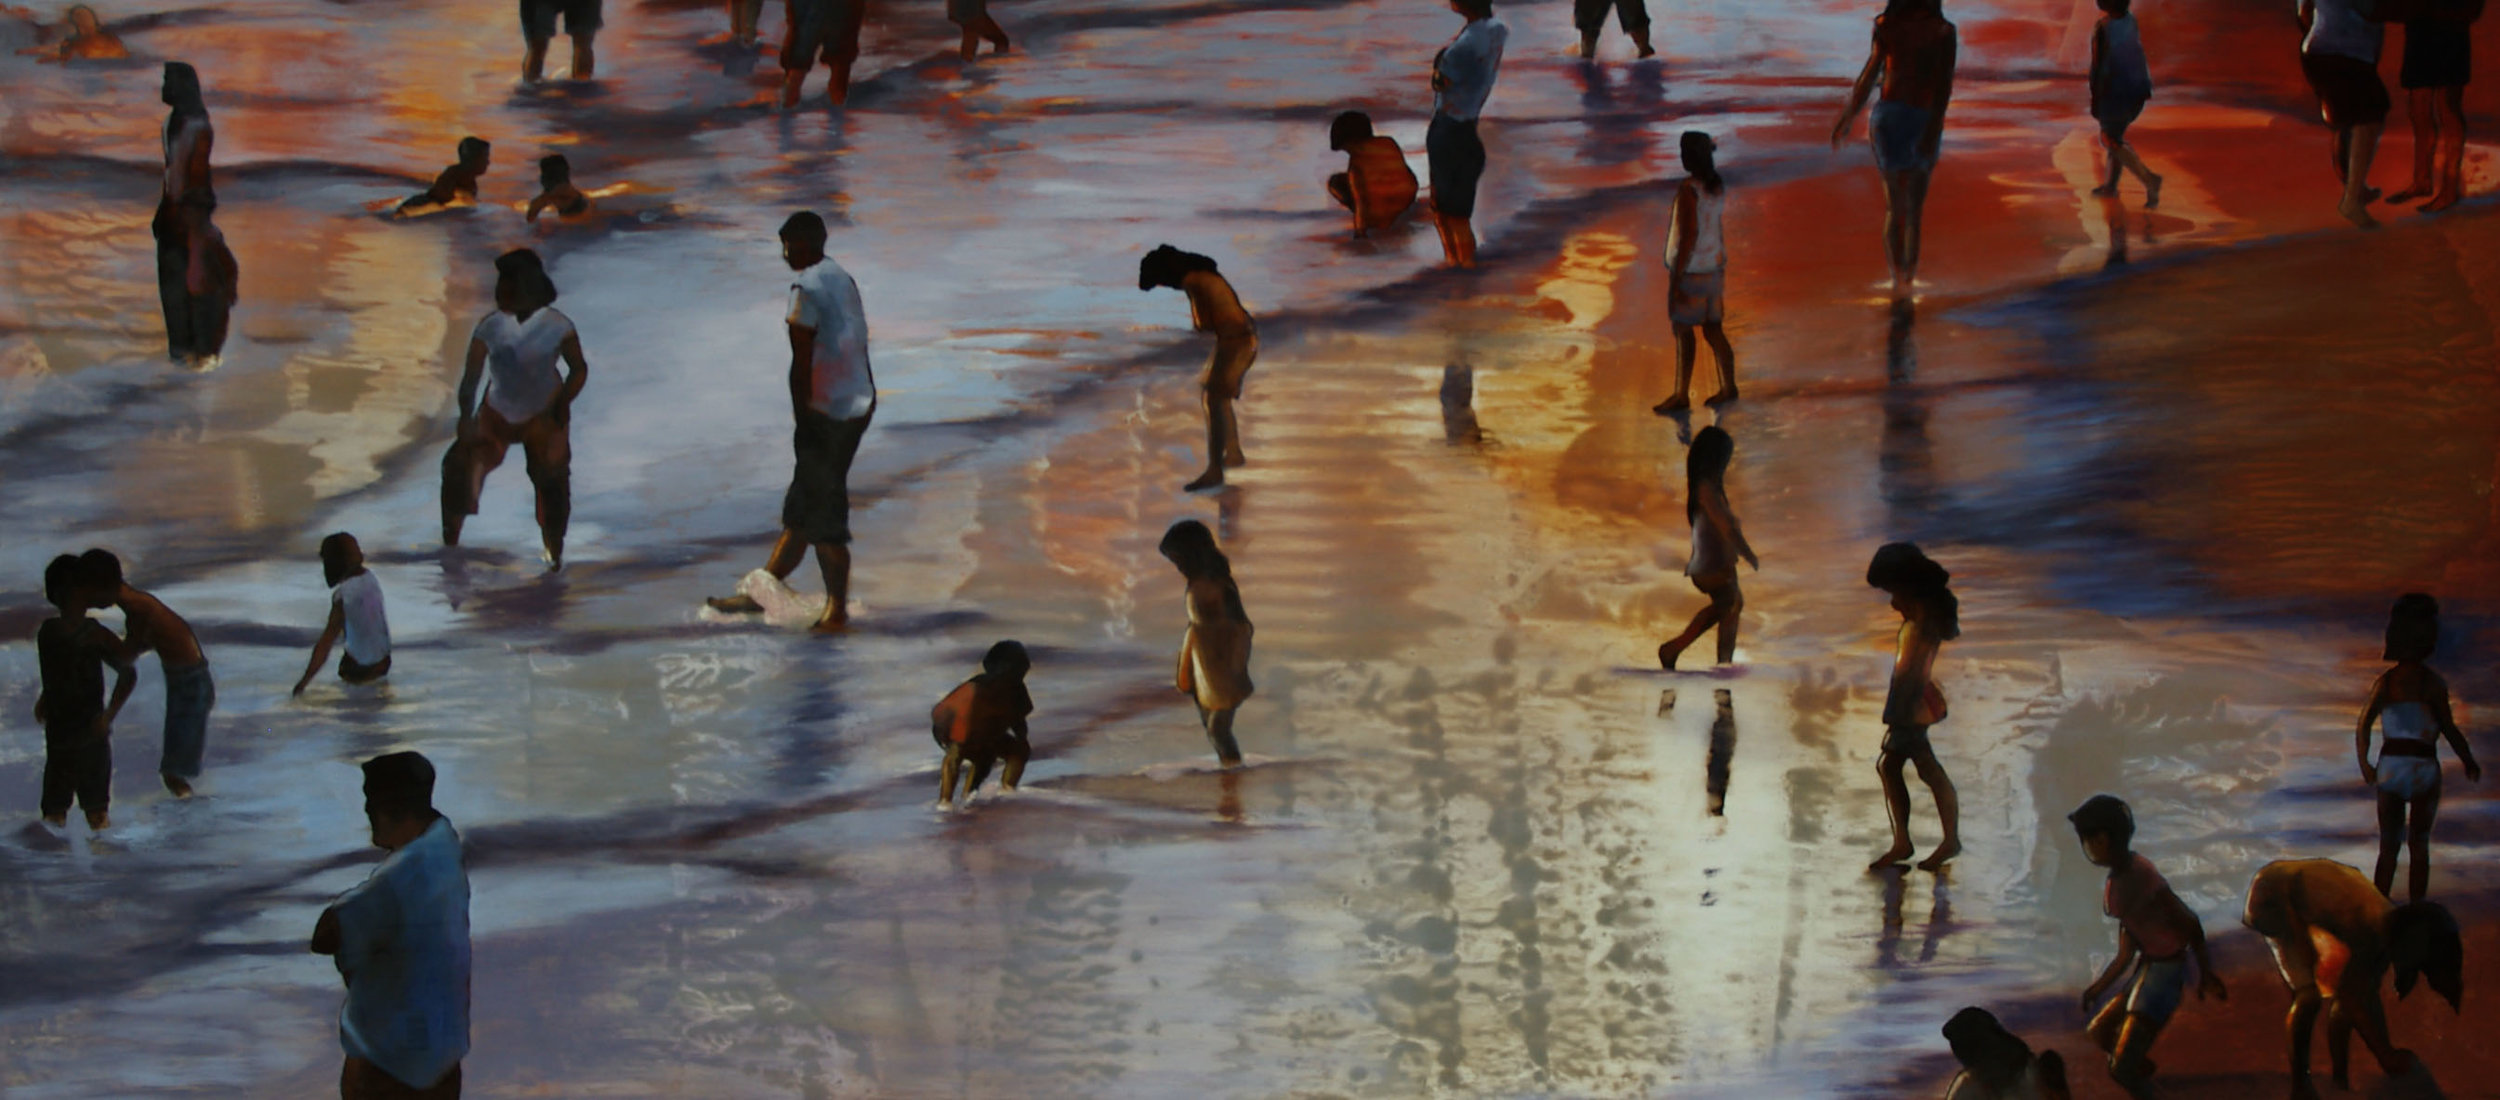 Kay Bradner  Sunset,  2012